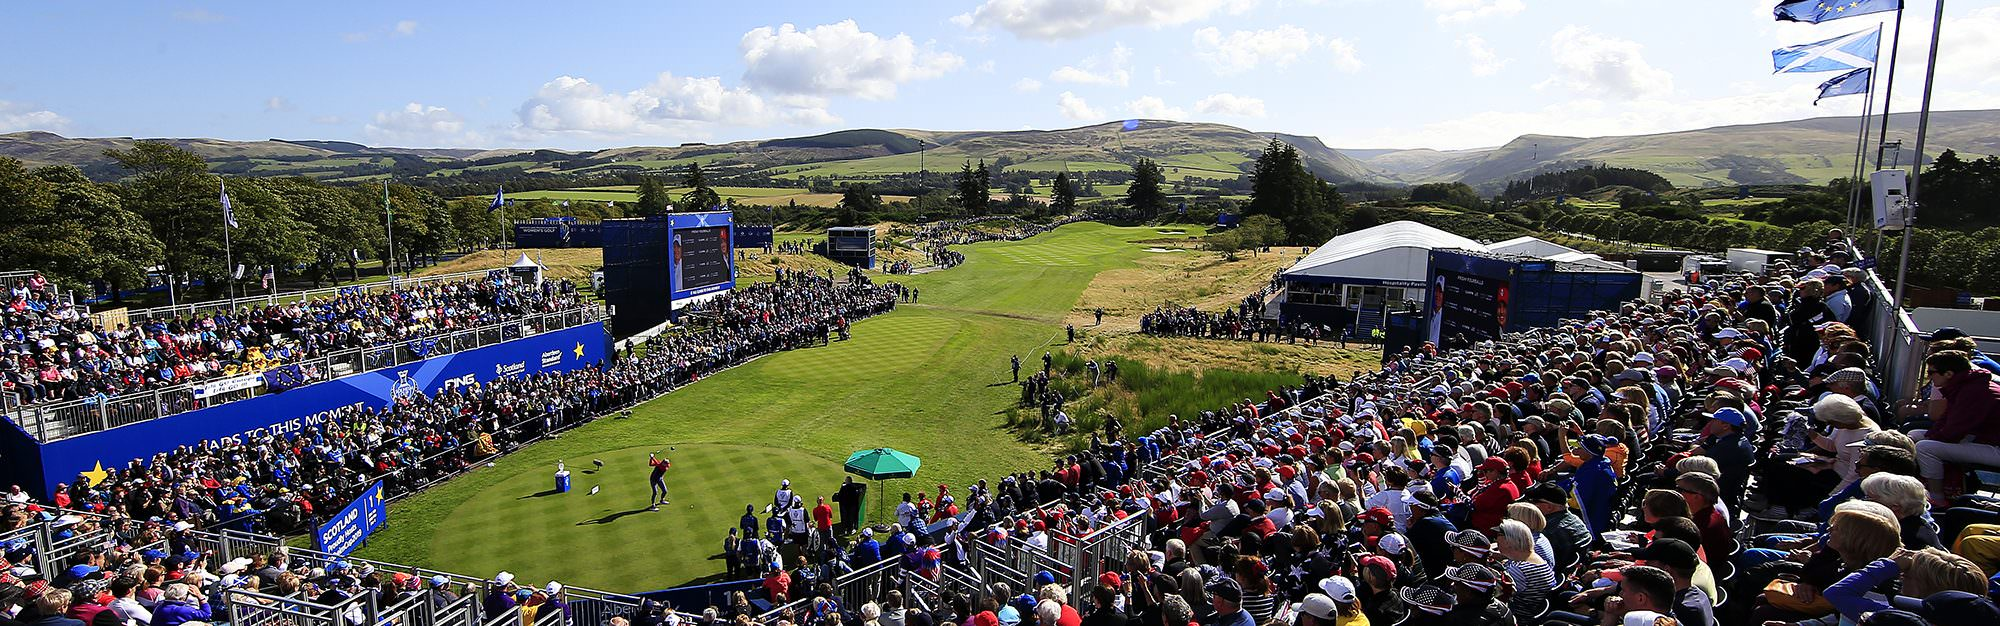 How does the Solheim Cup compare to the Ryder Cup at Gleneagles?